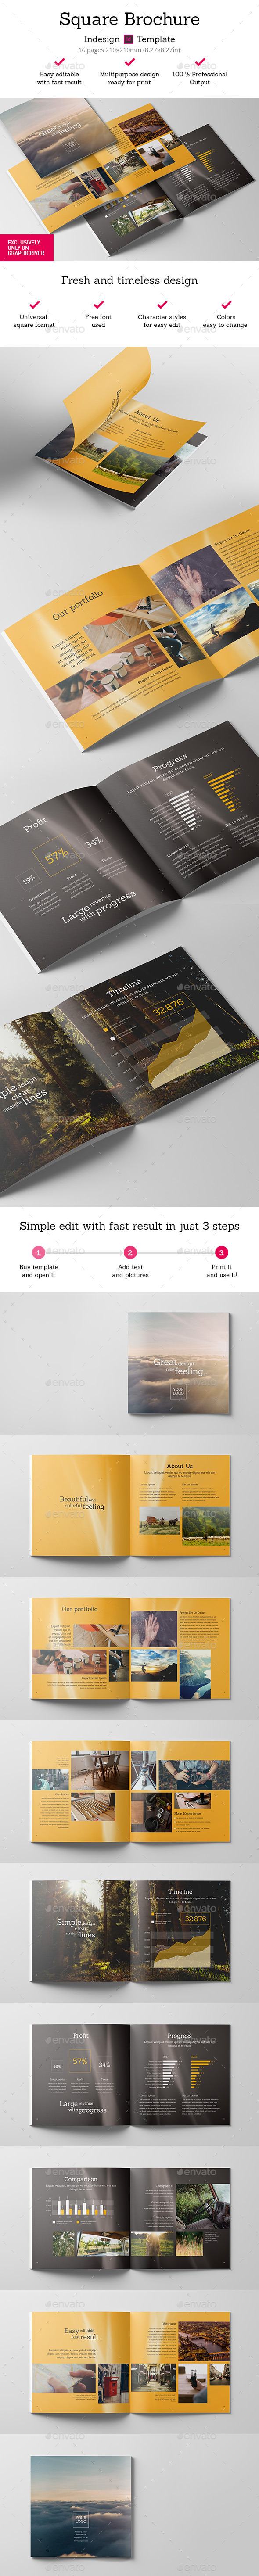 Square Brochure Indesign Template  - Brochures Print Templates